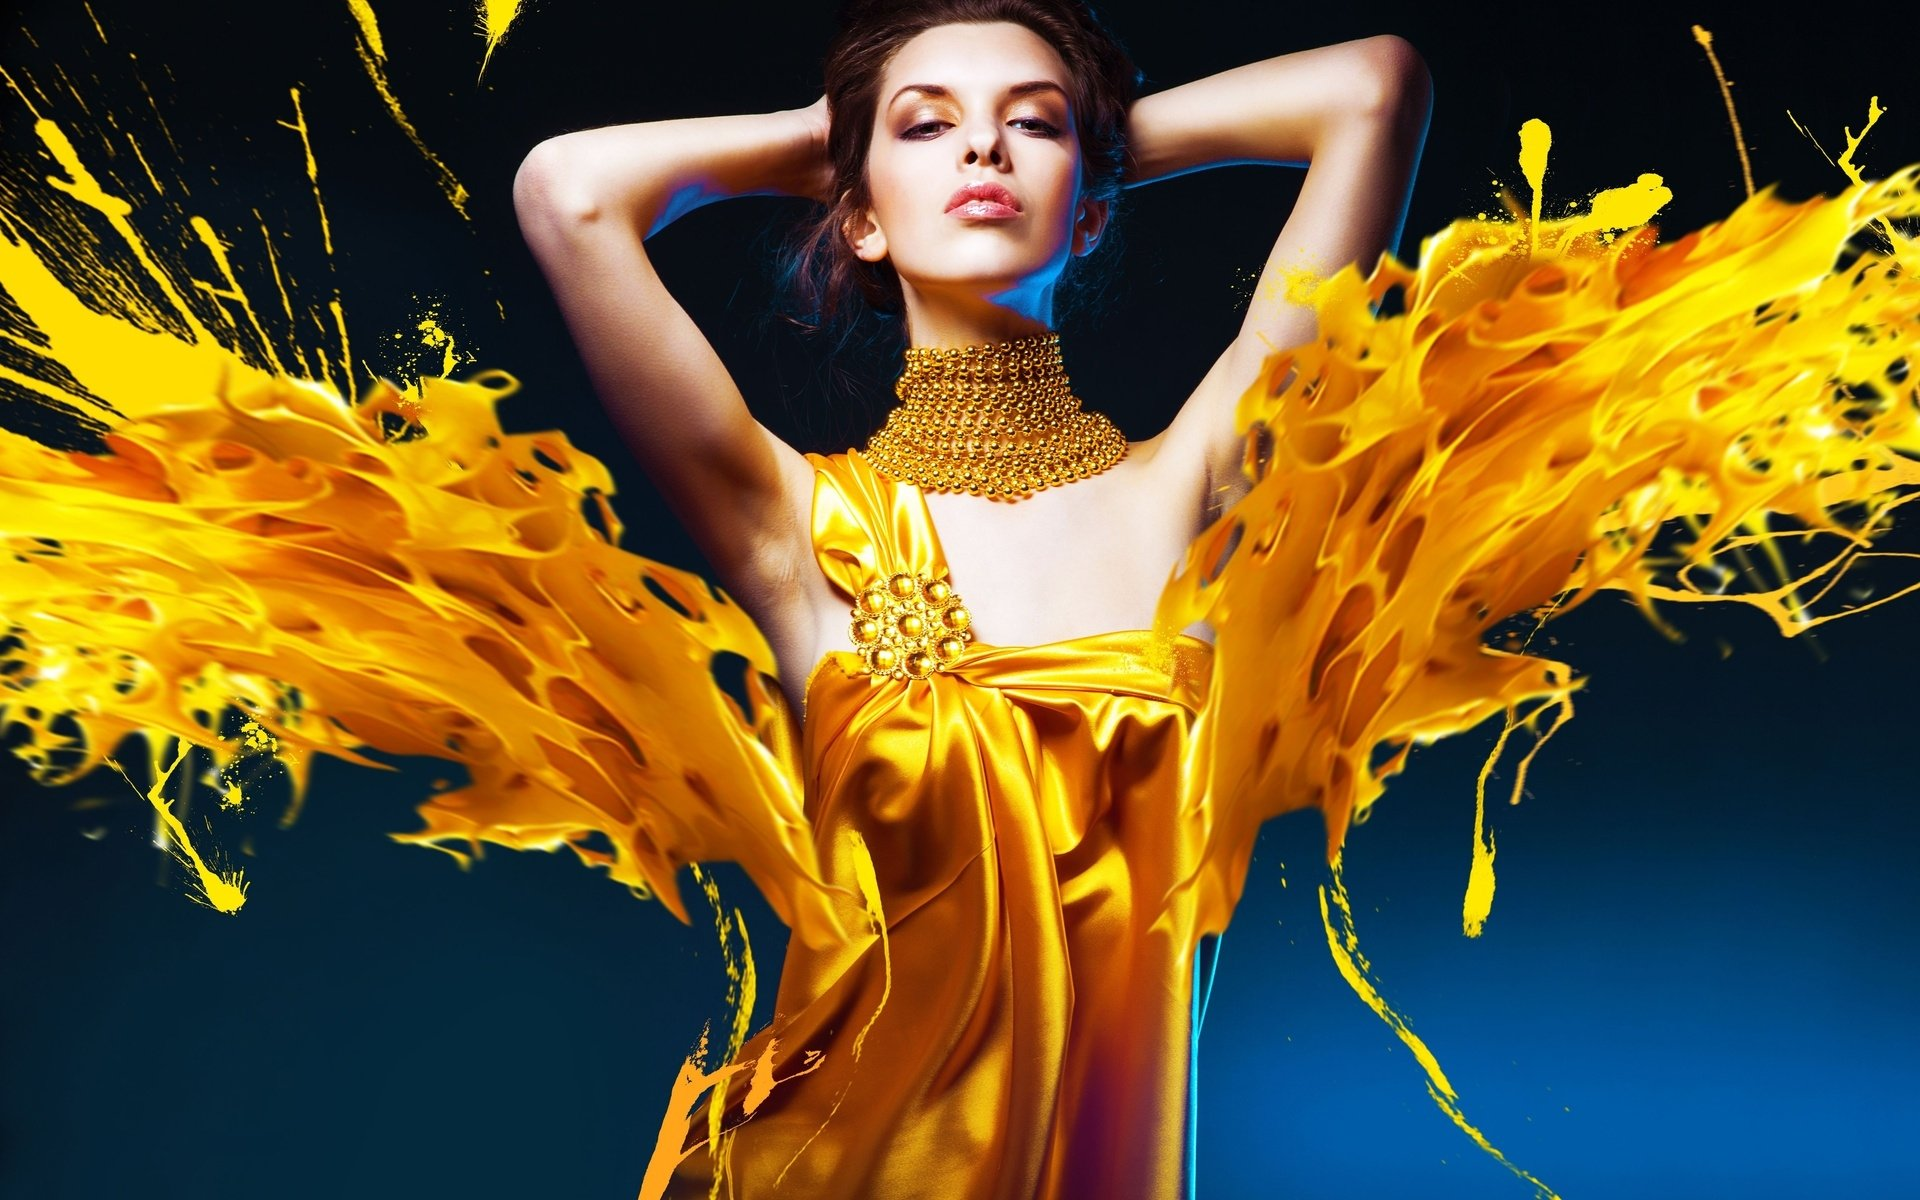 61 Fashion Hd Wallpapers Background Images Wallpaper Abyss